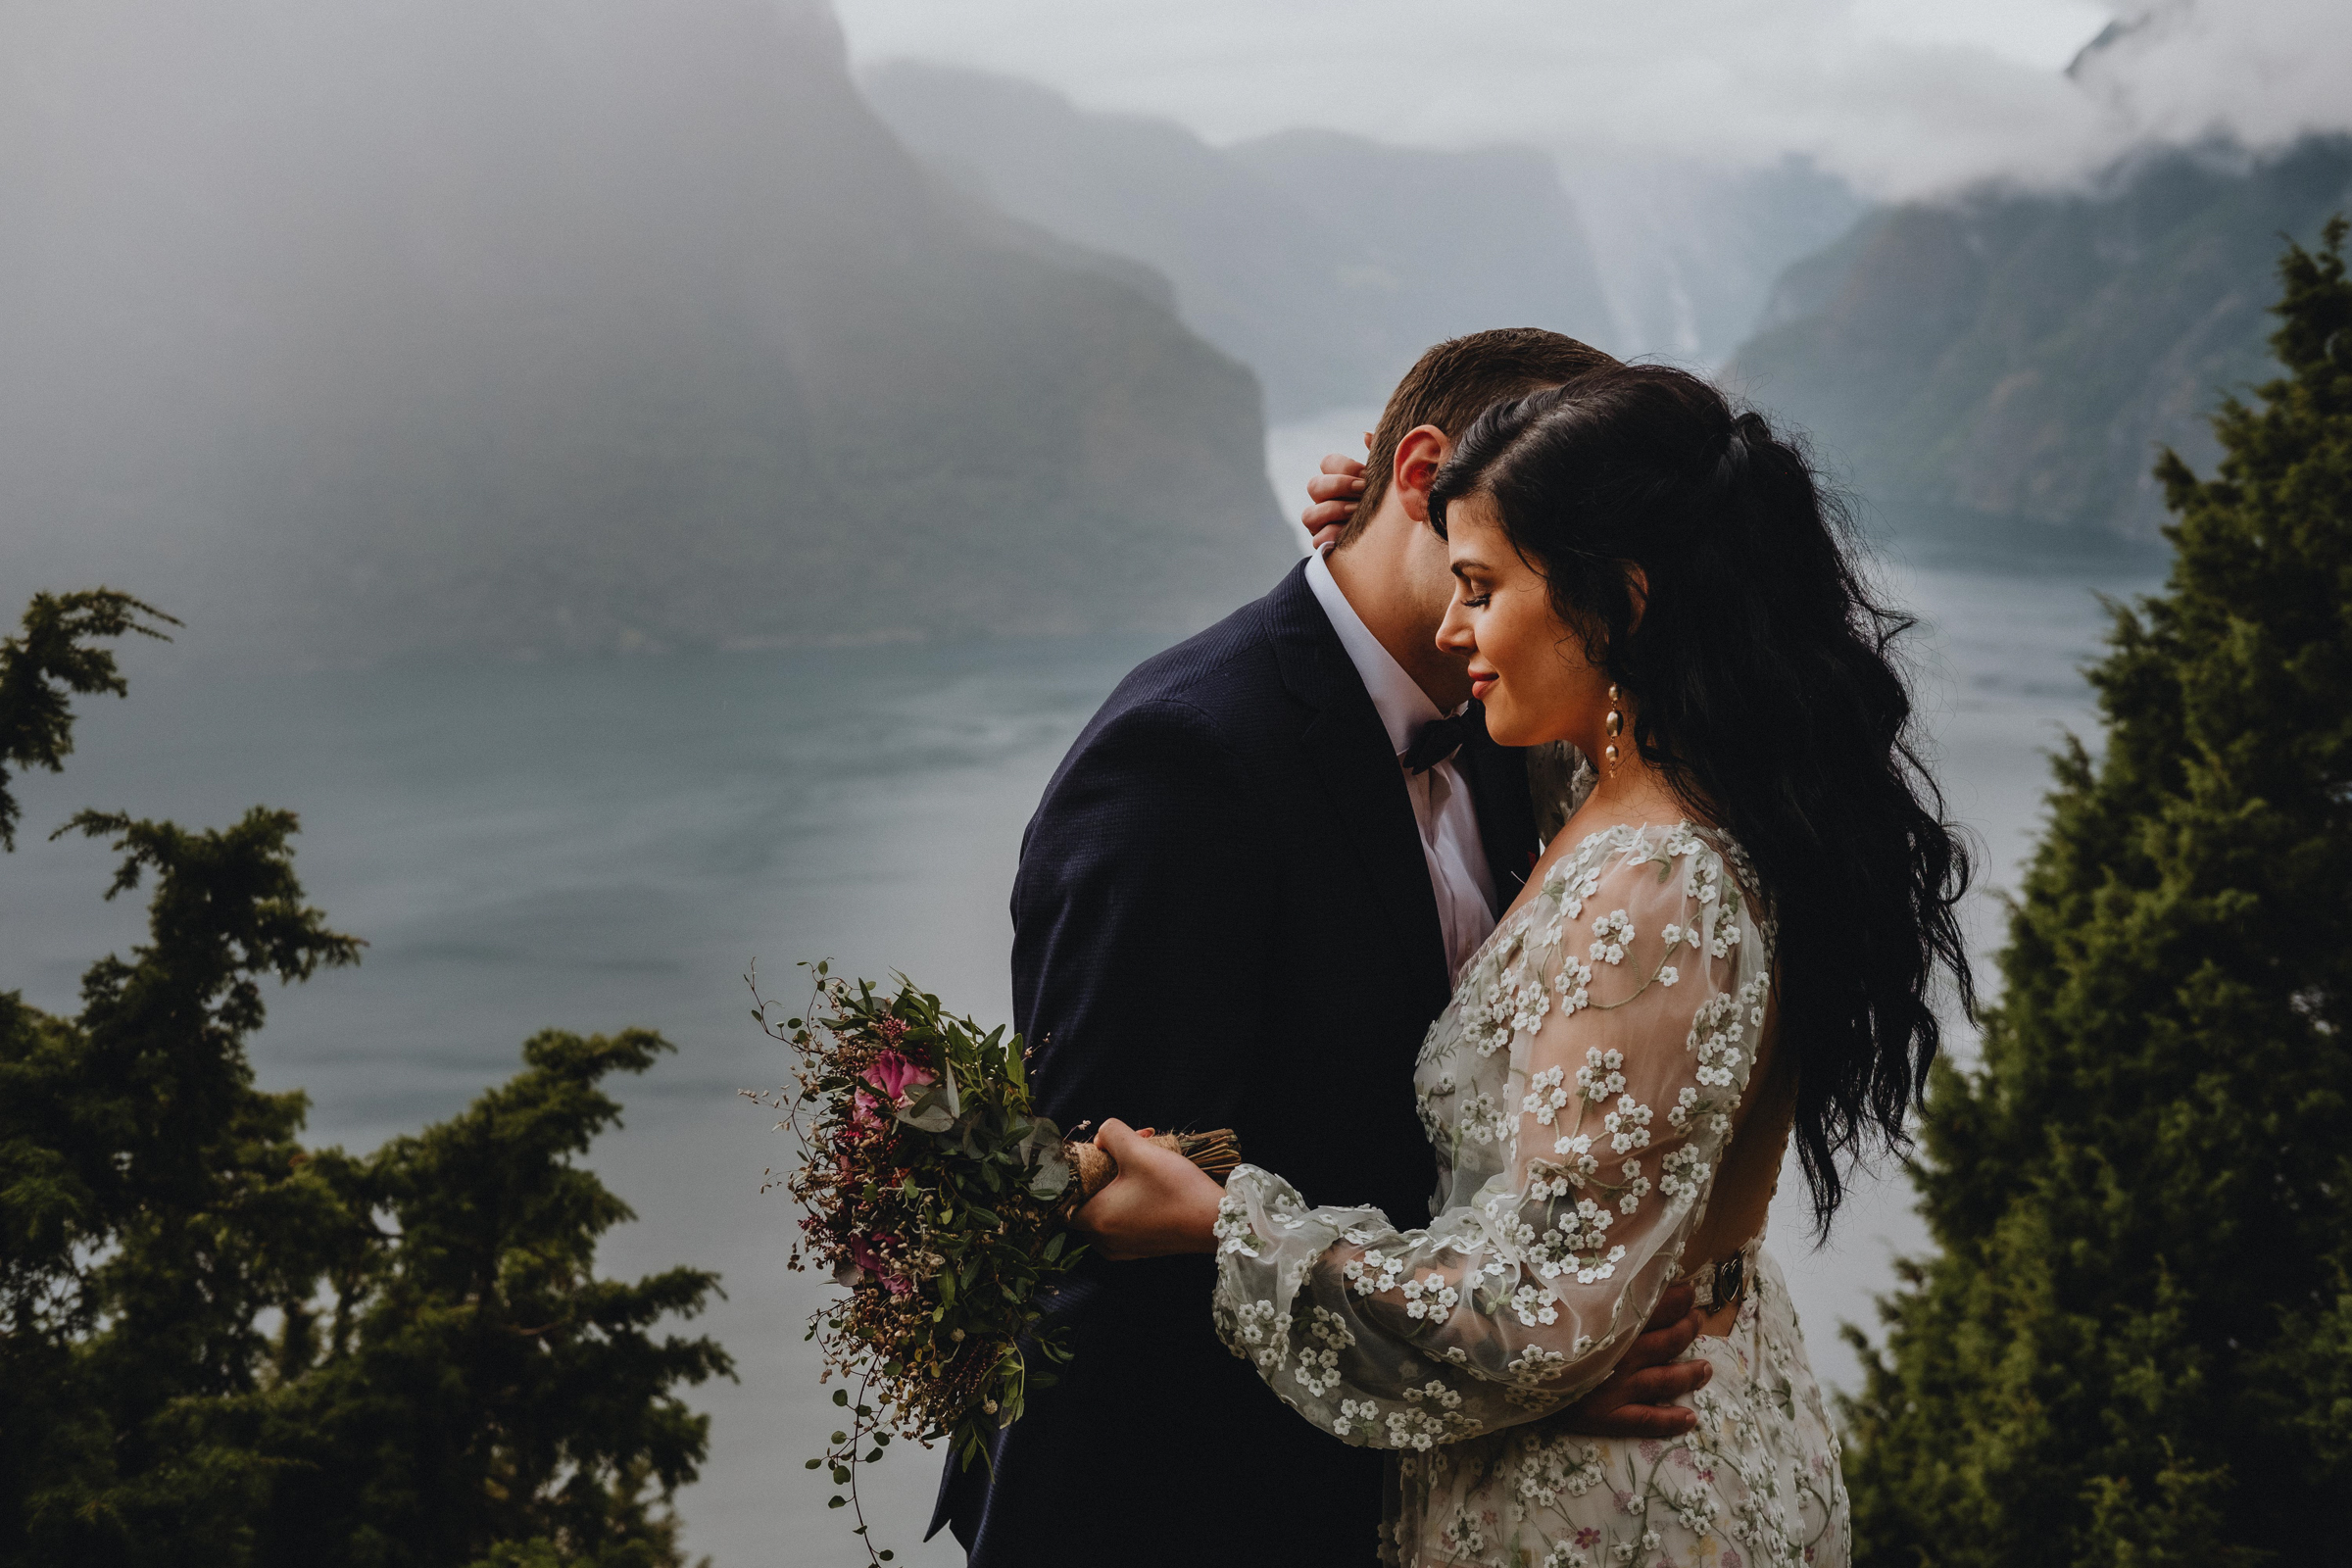 Elopement couple embrace against epic backdrop in Aurland Norway - photo by Christin Eide Photography